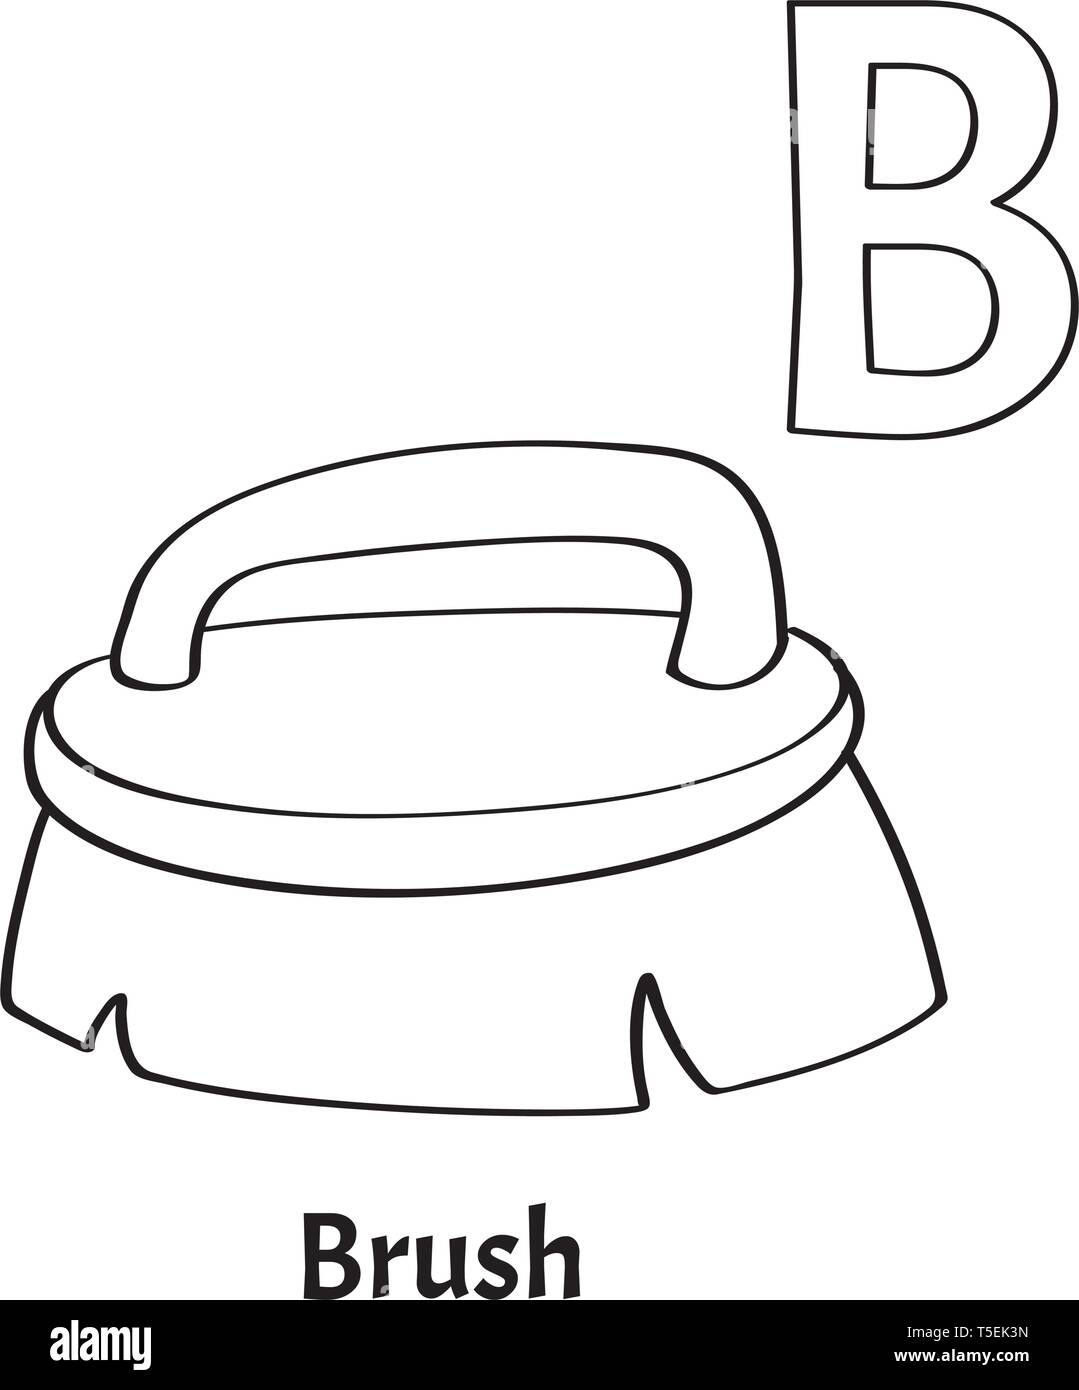 Vector Alphabet Letter B Coloring Page Brush Stock Vector Image Art Alamy